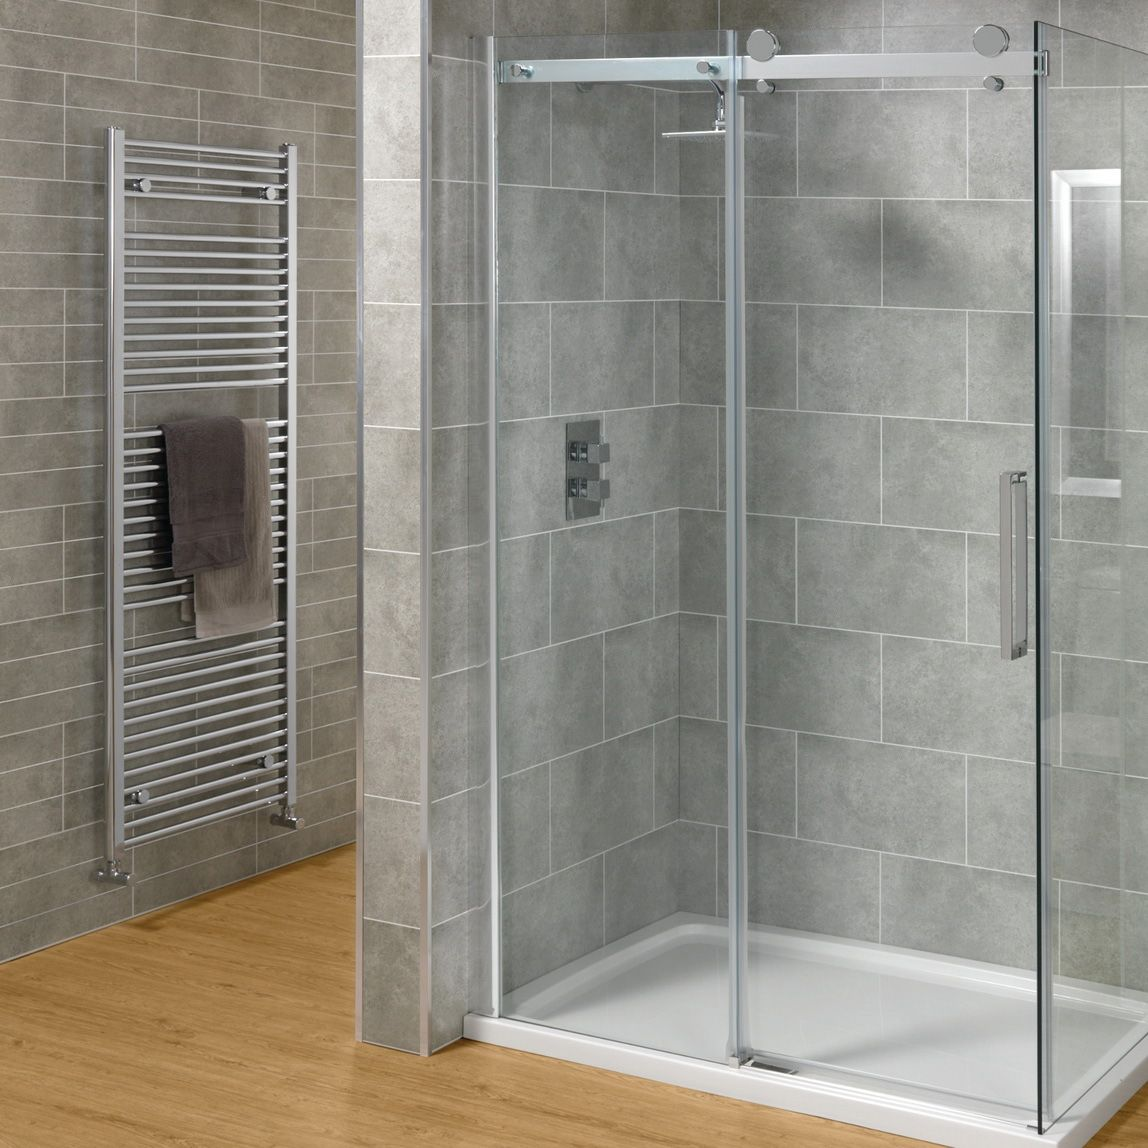 jovelski western doors york new glass doorstwin buffalo bath shower bathroom and